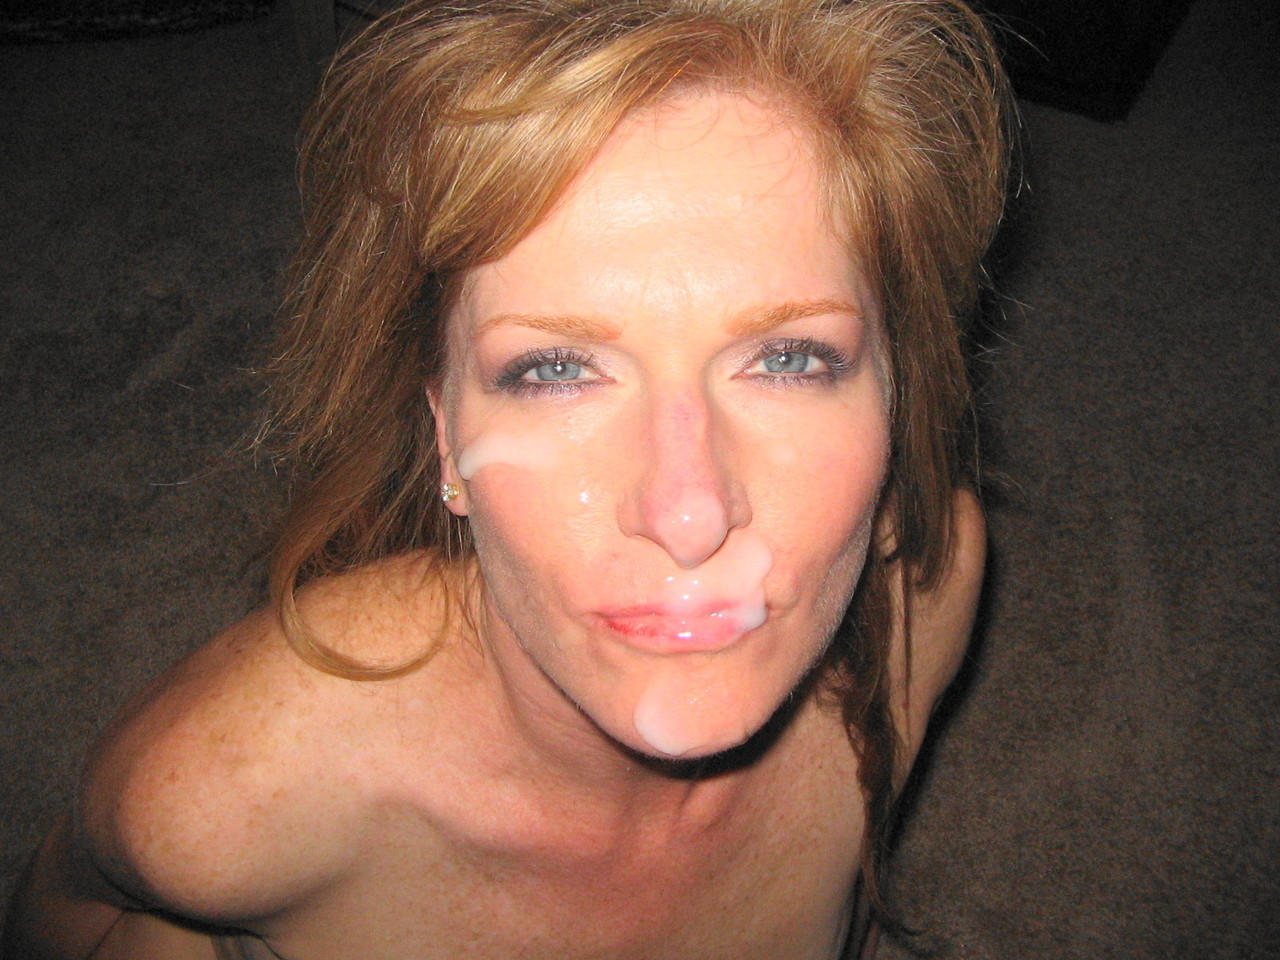 There amateur mom facial